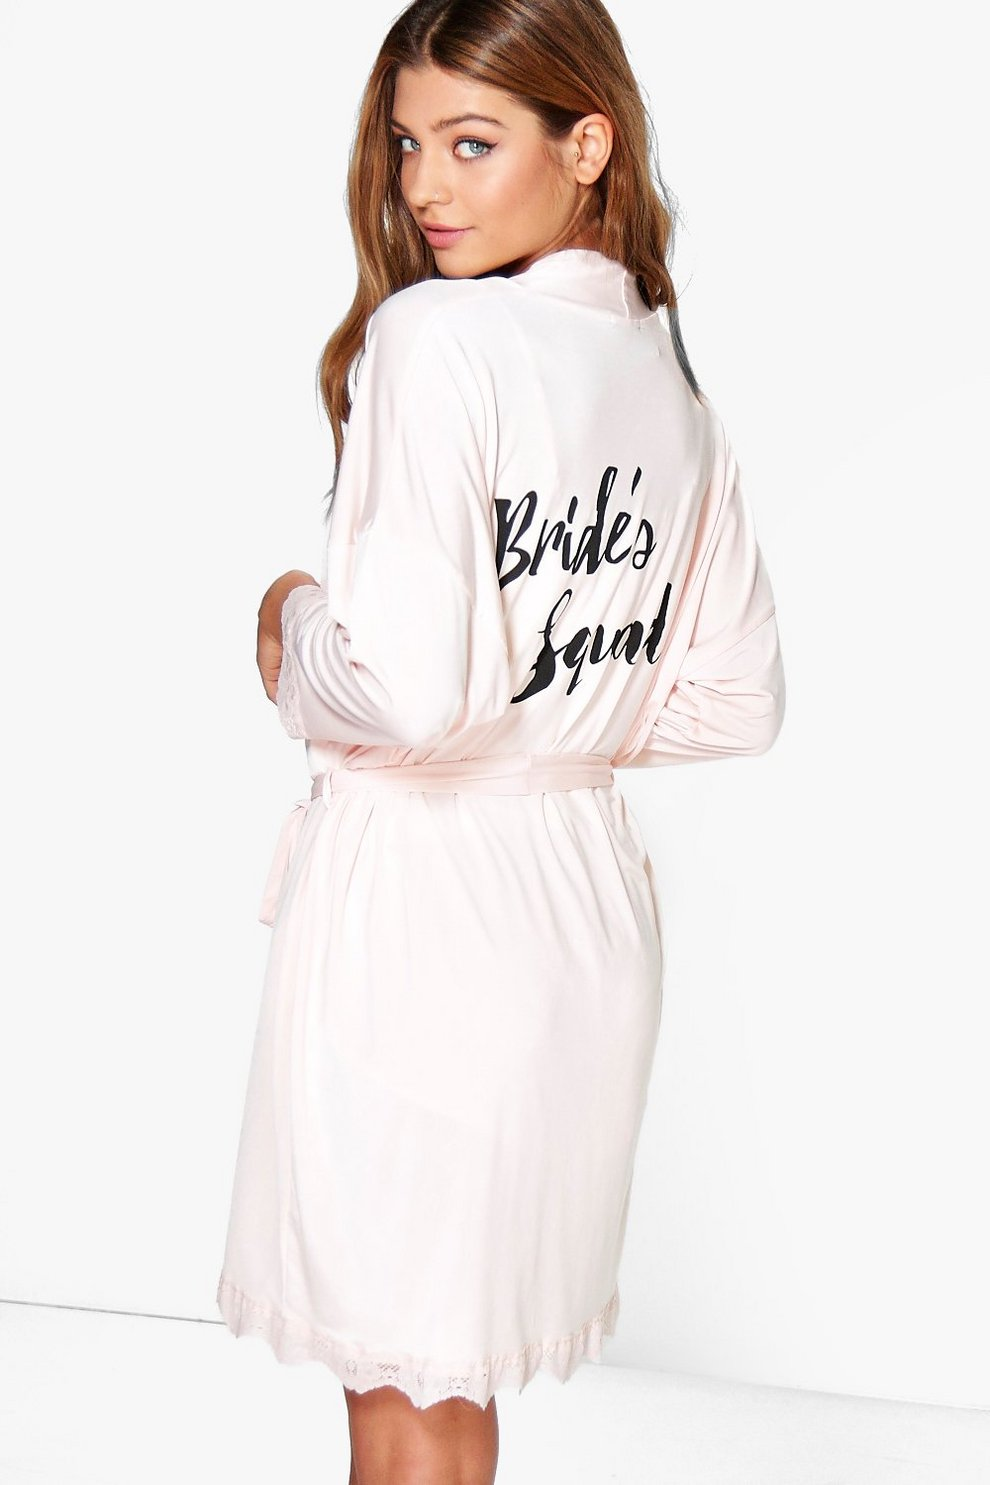 aecf12c474 Brides Squad Slogan Lace Detail Bridal Robe